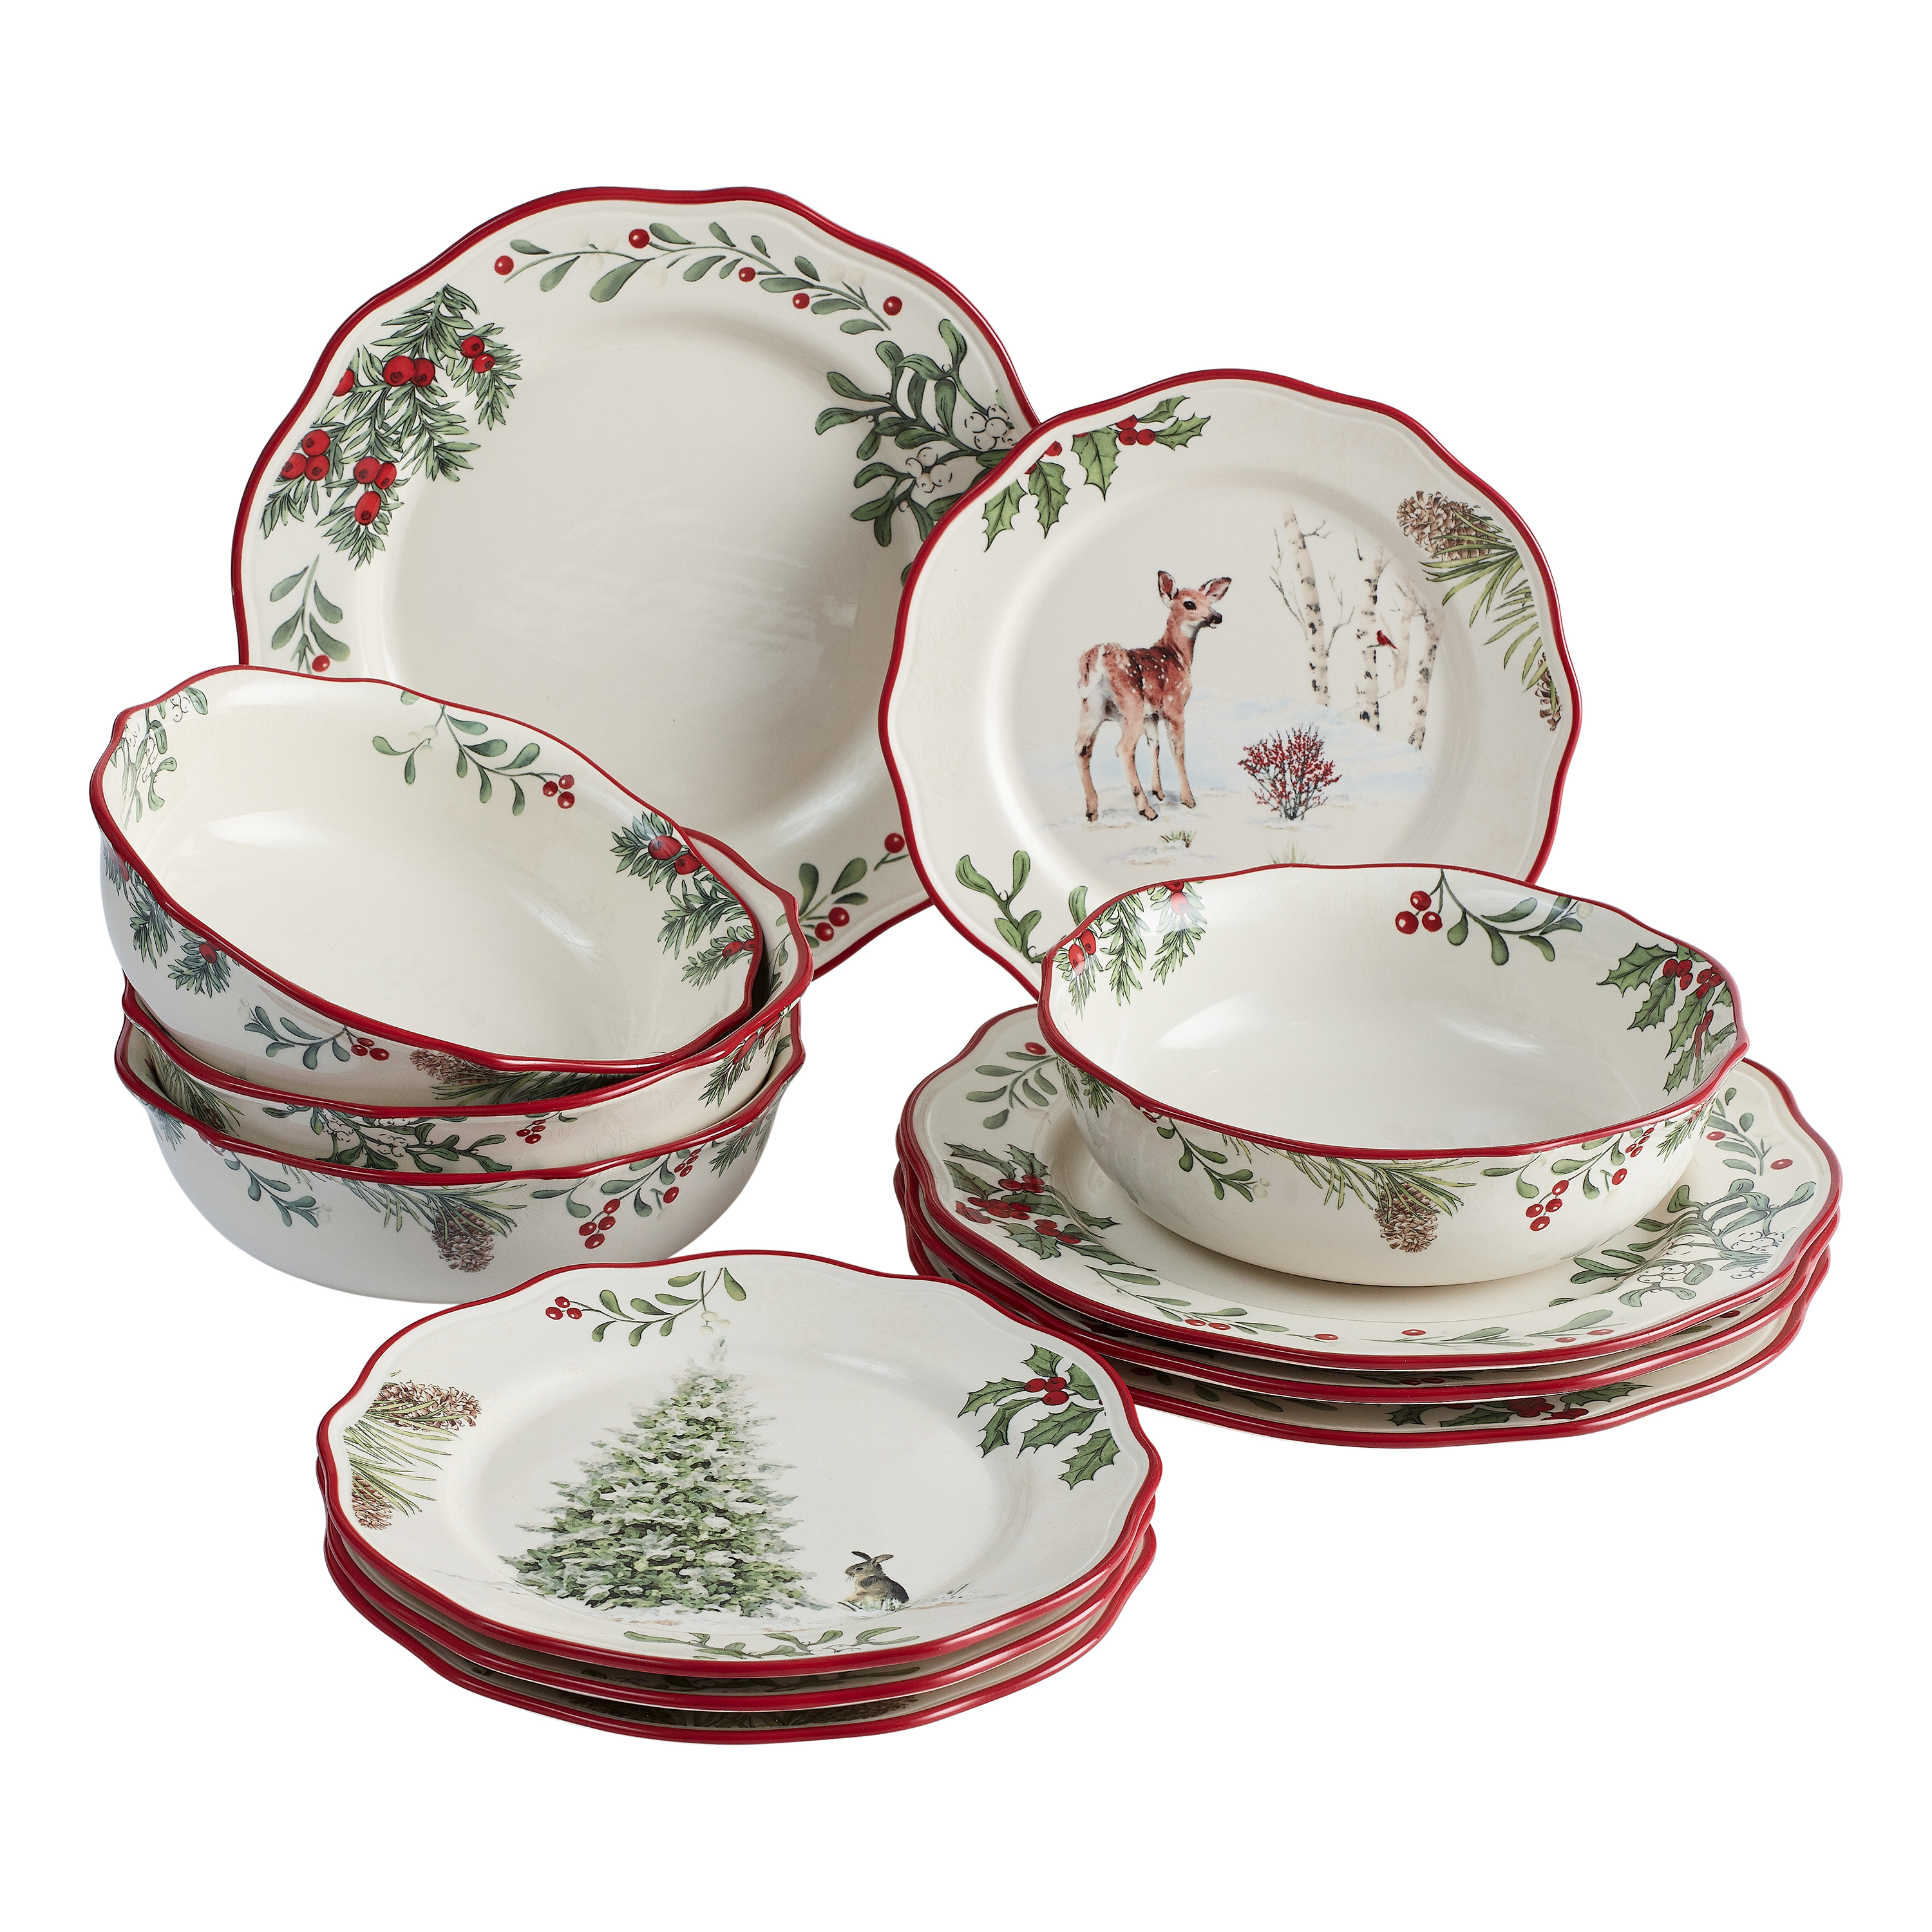 Canisters Home Essentials Festive Tree Collection Serveware Plates +++ Bowls